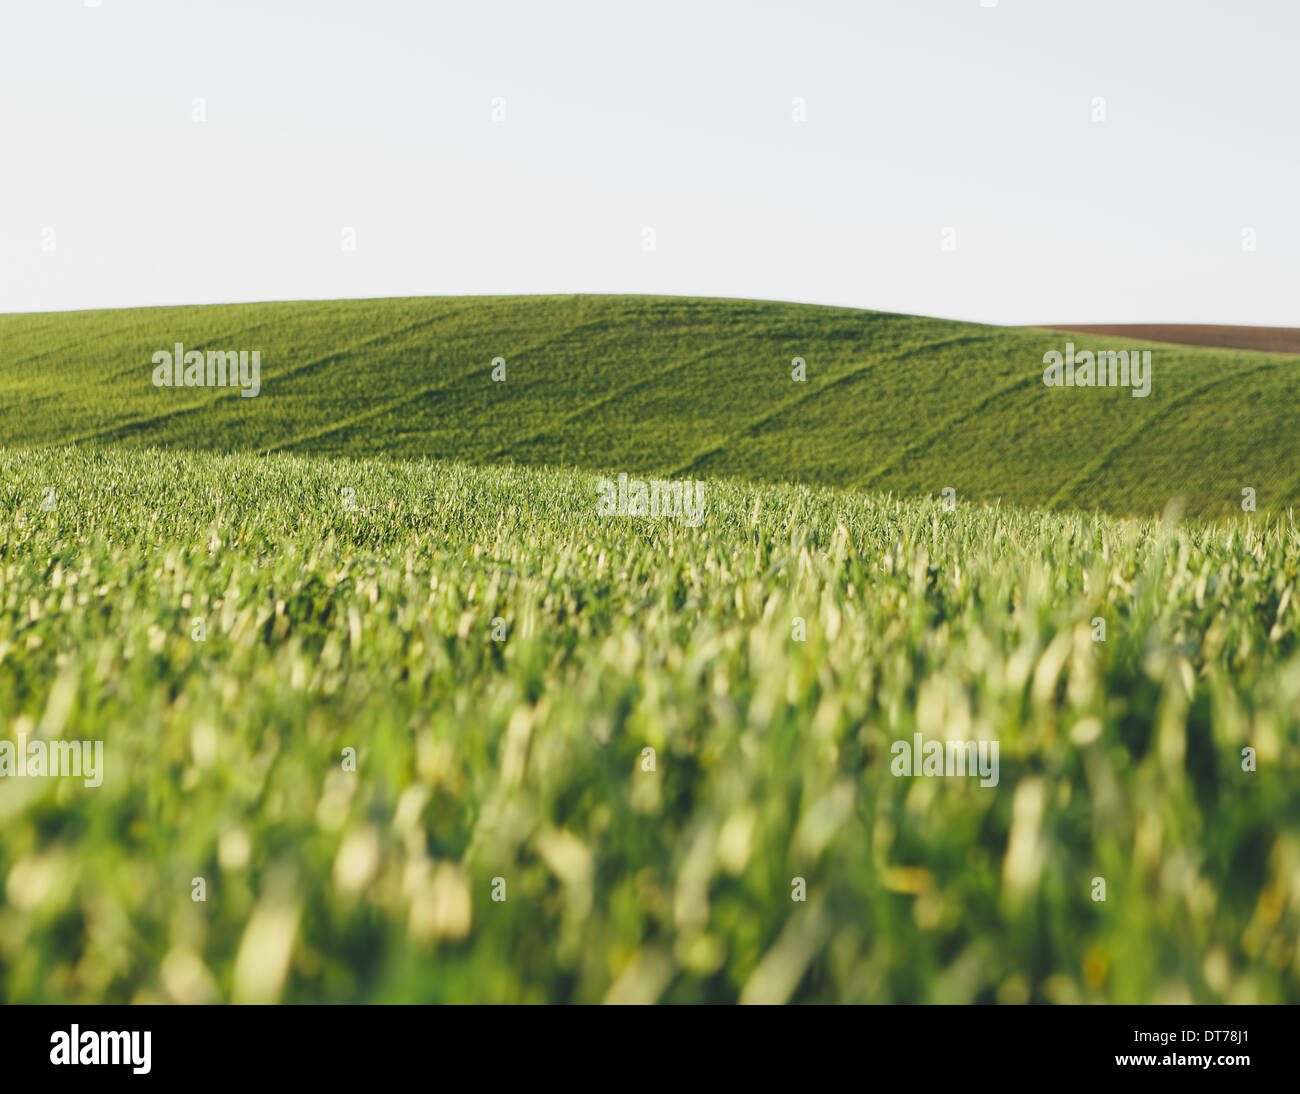 A view across the ripening stalks of a food crop, cultivated wheat growing in a field near Pullman, Washington, USA. - Stock Image